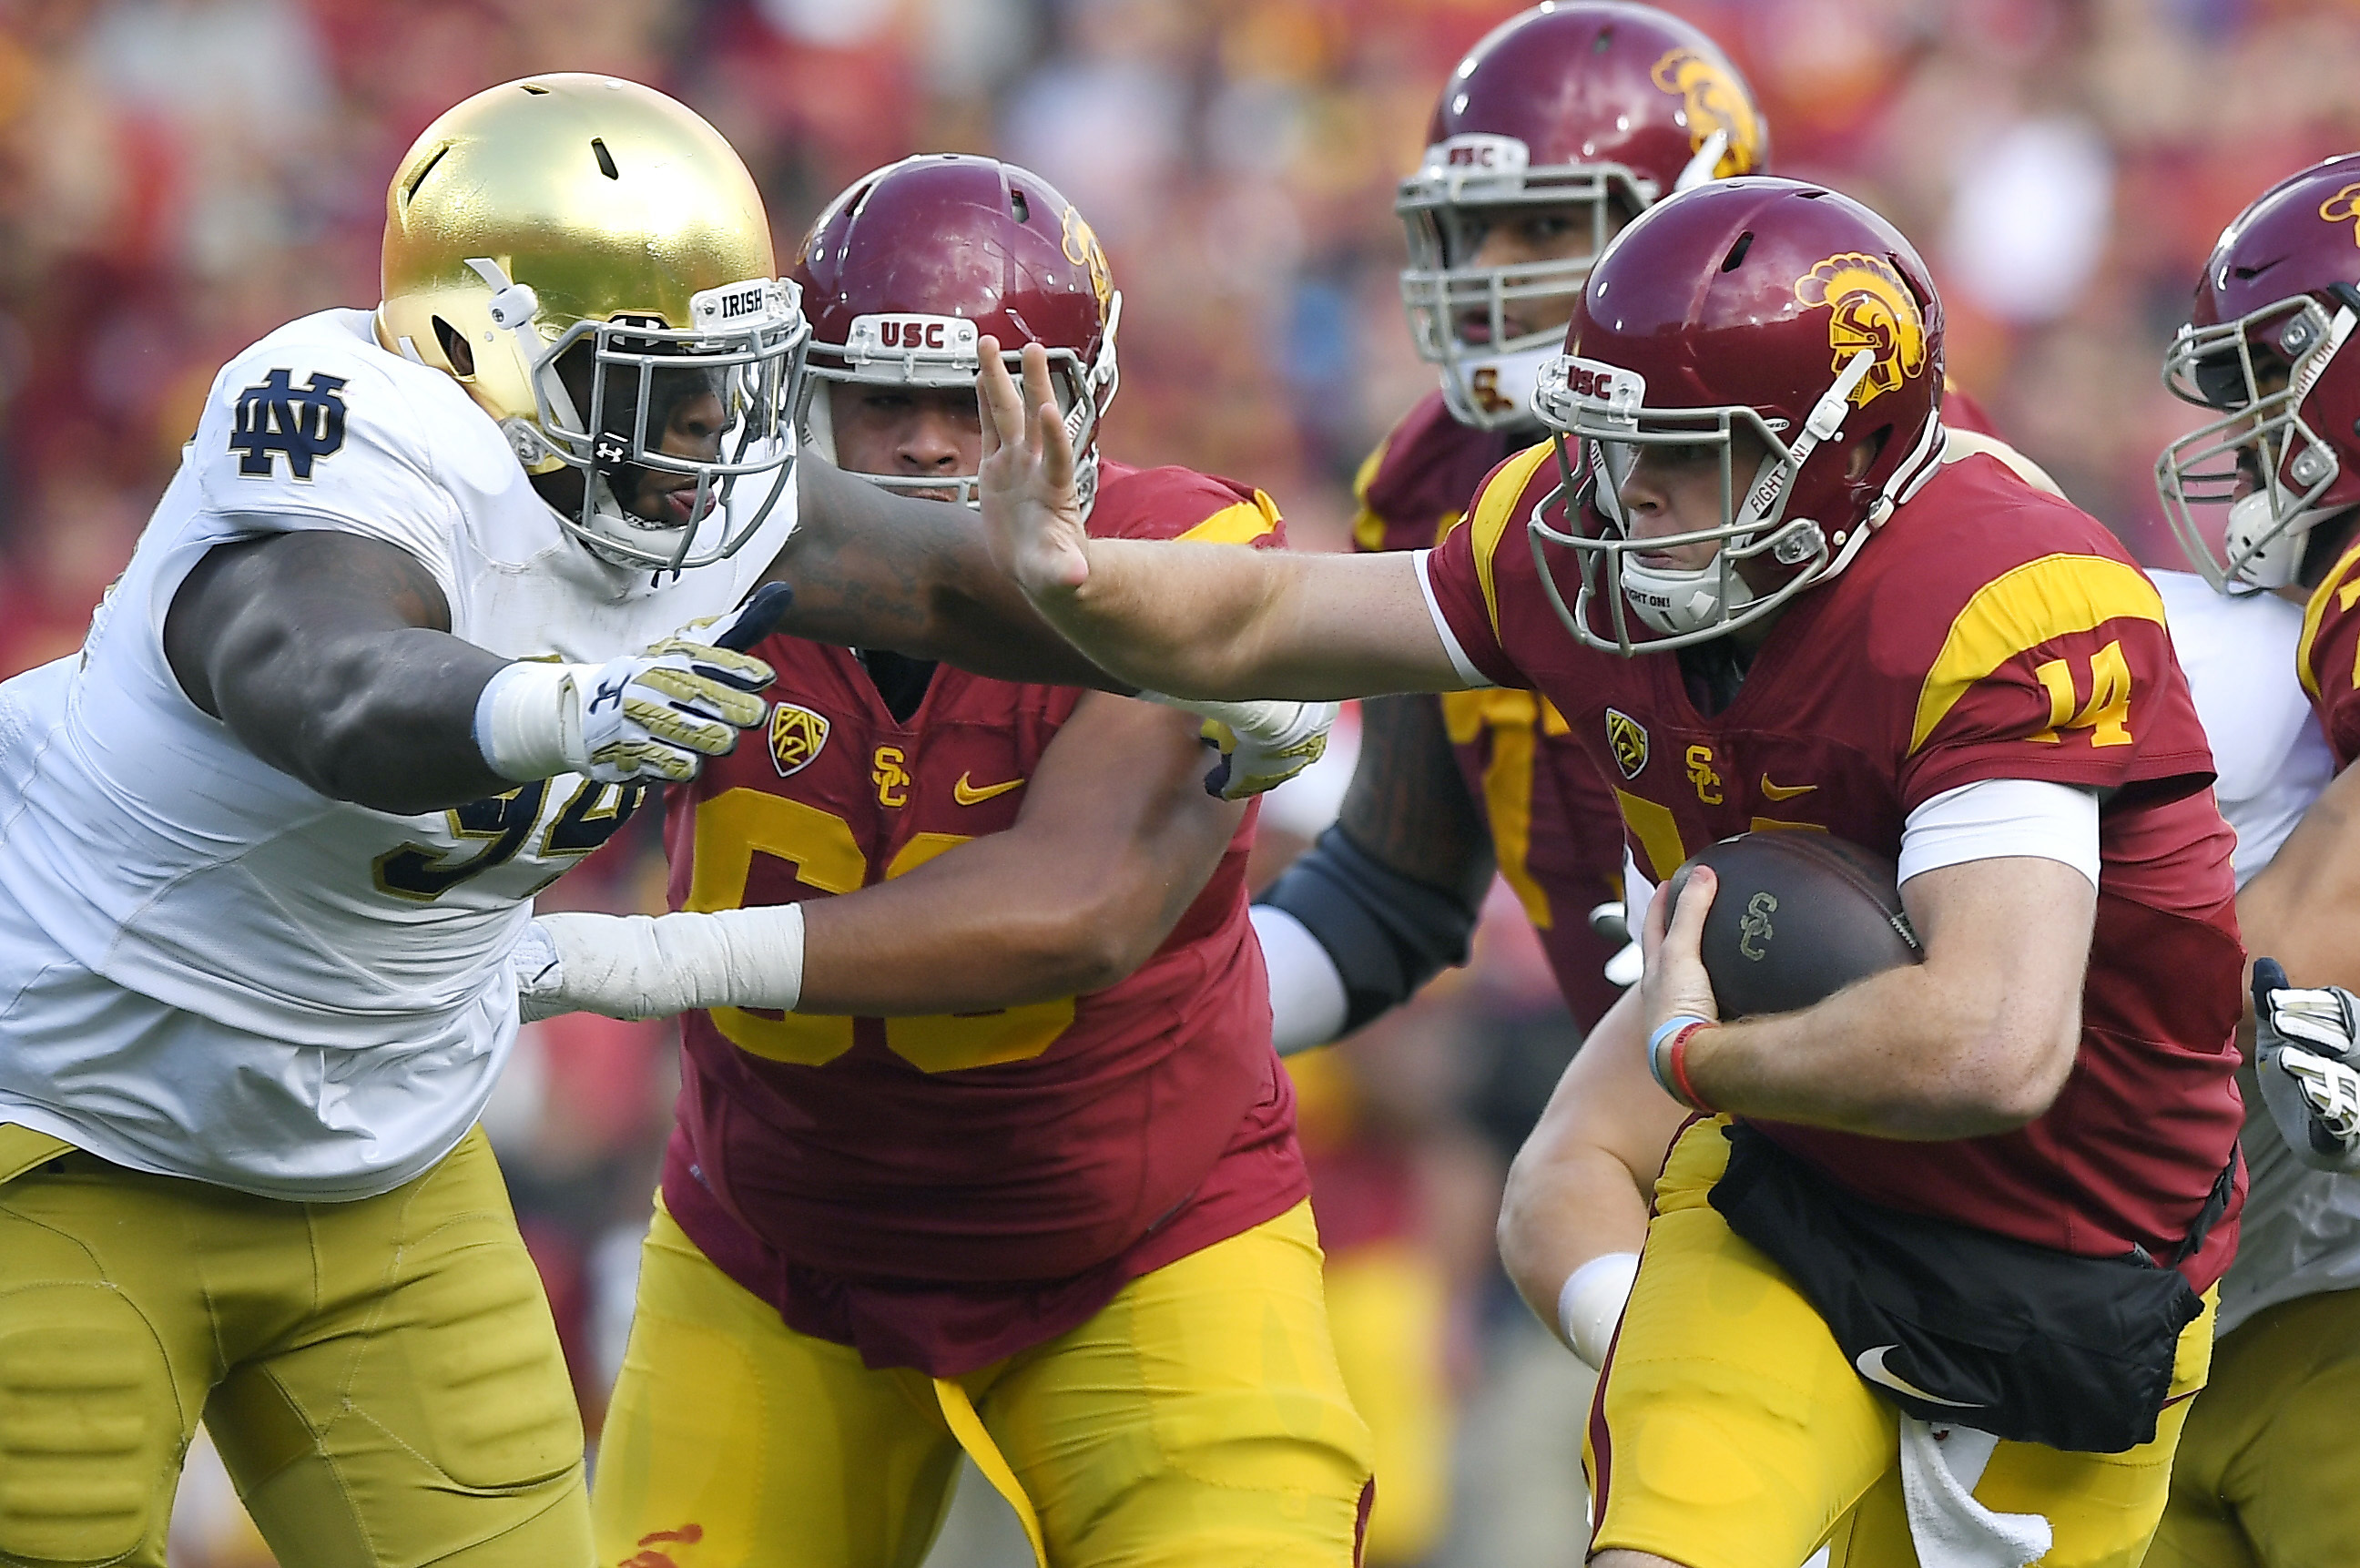 Southern California quarterback Sam Darnold, right, fends off Notre Dame defensive lineman Jarron Jones as he runs the ball during the first half of an NCAA college football game, Saturday, Nov. 26, 2016, in Los Angeles. (AP Photo/Mark J. Terrill)